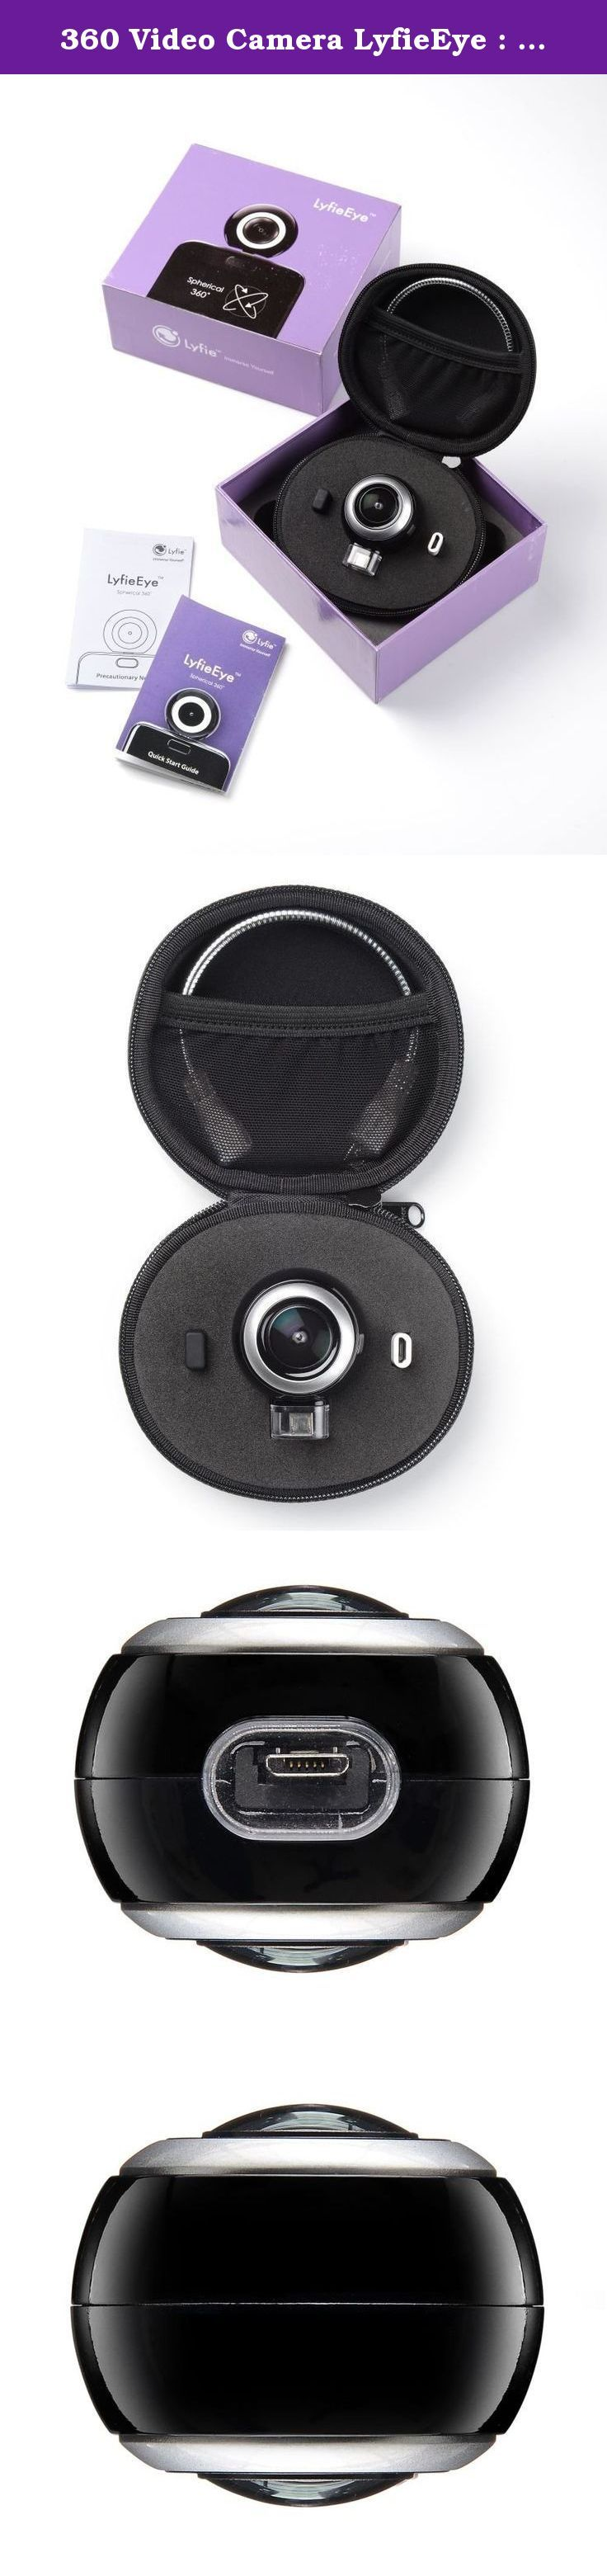 360 Video Camera LyfieEye : 360 Degree Dual Lens HD Video Camera for Android Smartphone (Polished Black Full Set). LyfieEyeTM. The first truly affordable 360 video camera that plugs straight into your Android Phone to allow you to preview, record and playback live-like spherical 360 degree videos and photos. Built to capture and share moments the way they actually happened, The LyfieEyeTM uploads instantly to Facebook 360, YouTube 360, and syncs flawlessly to any VR headset without any...